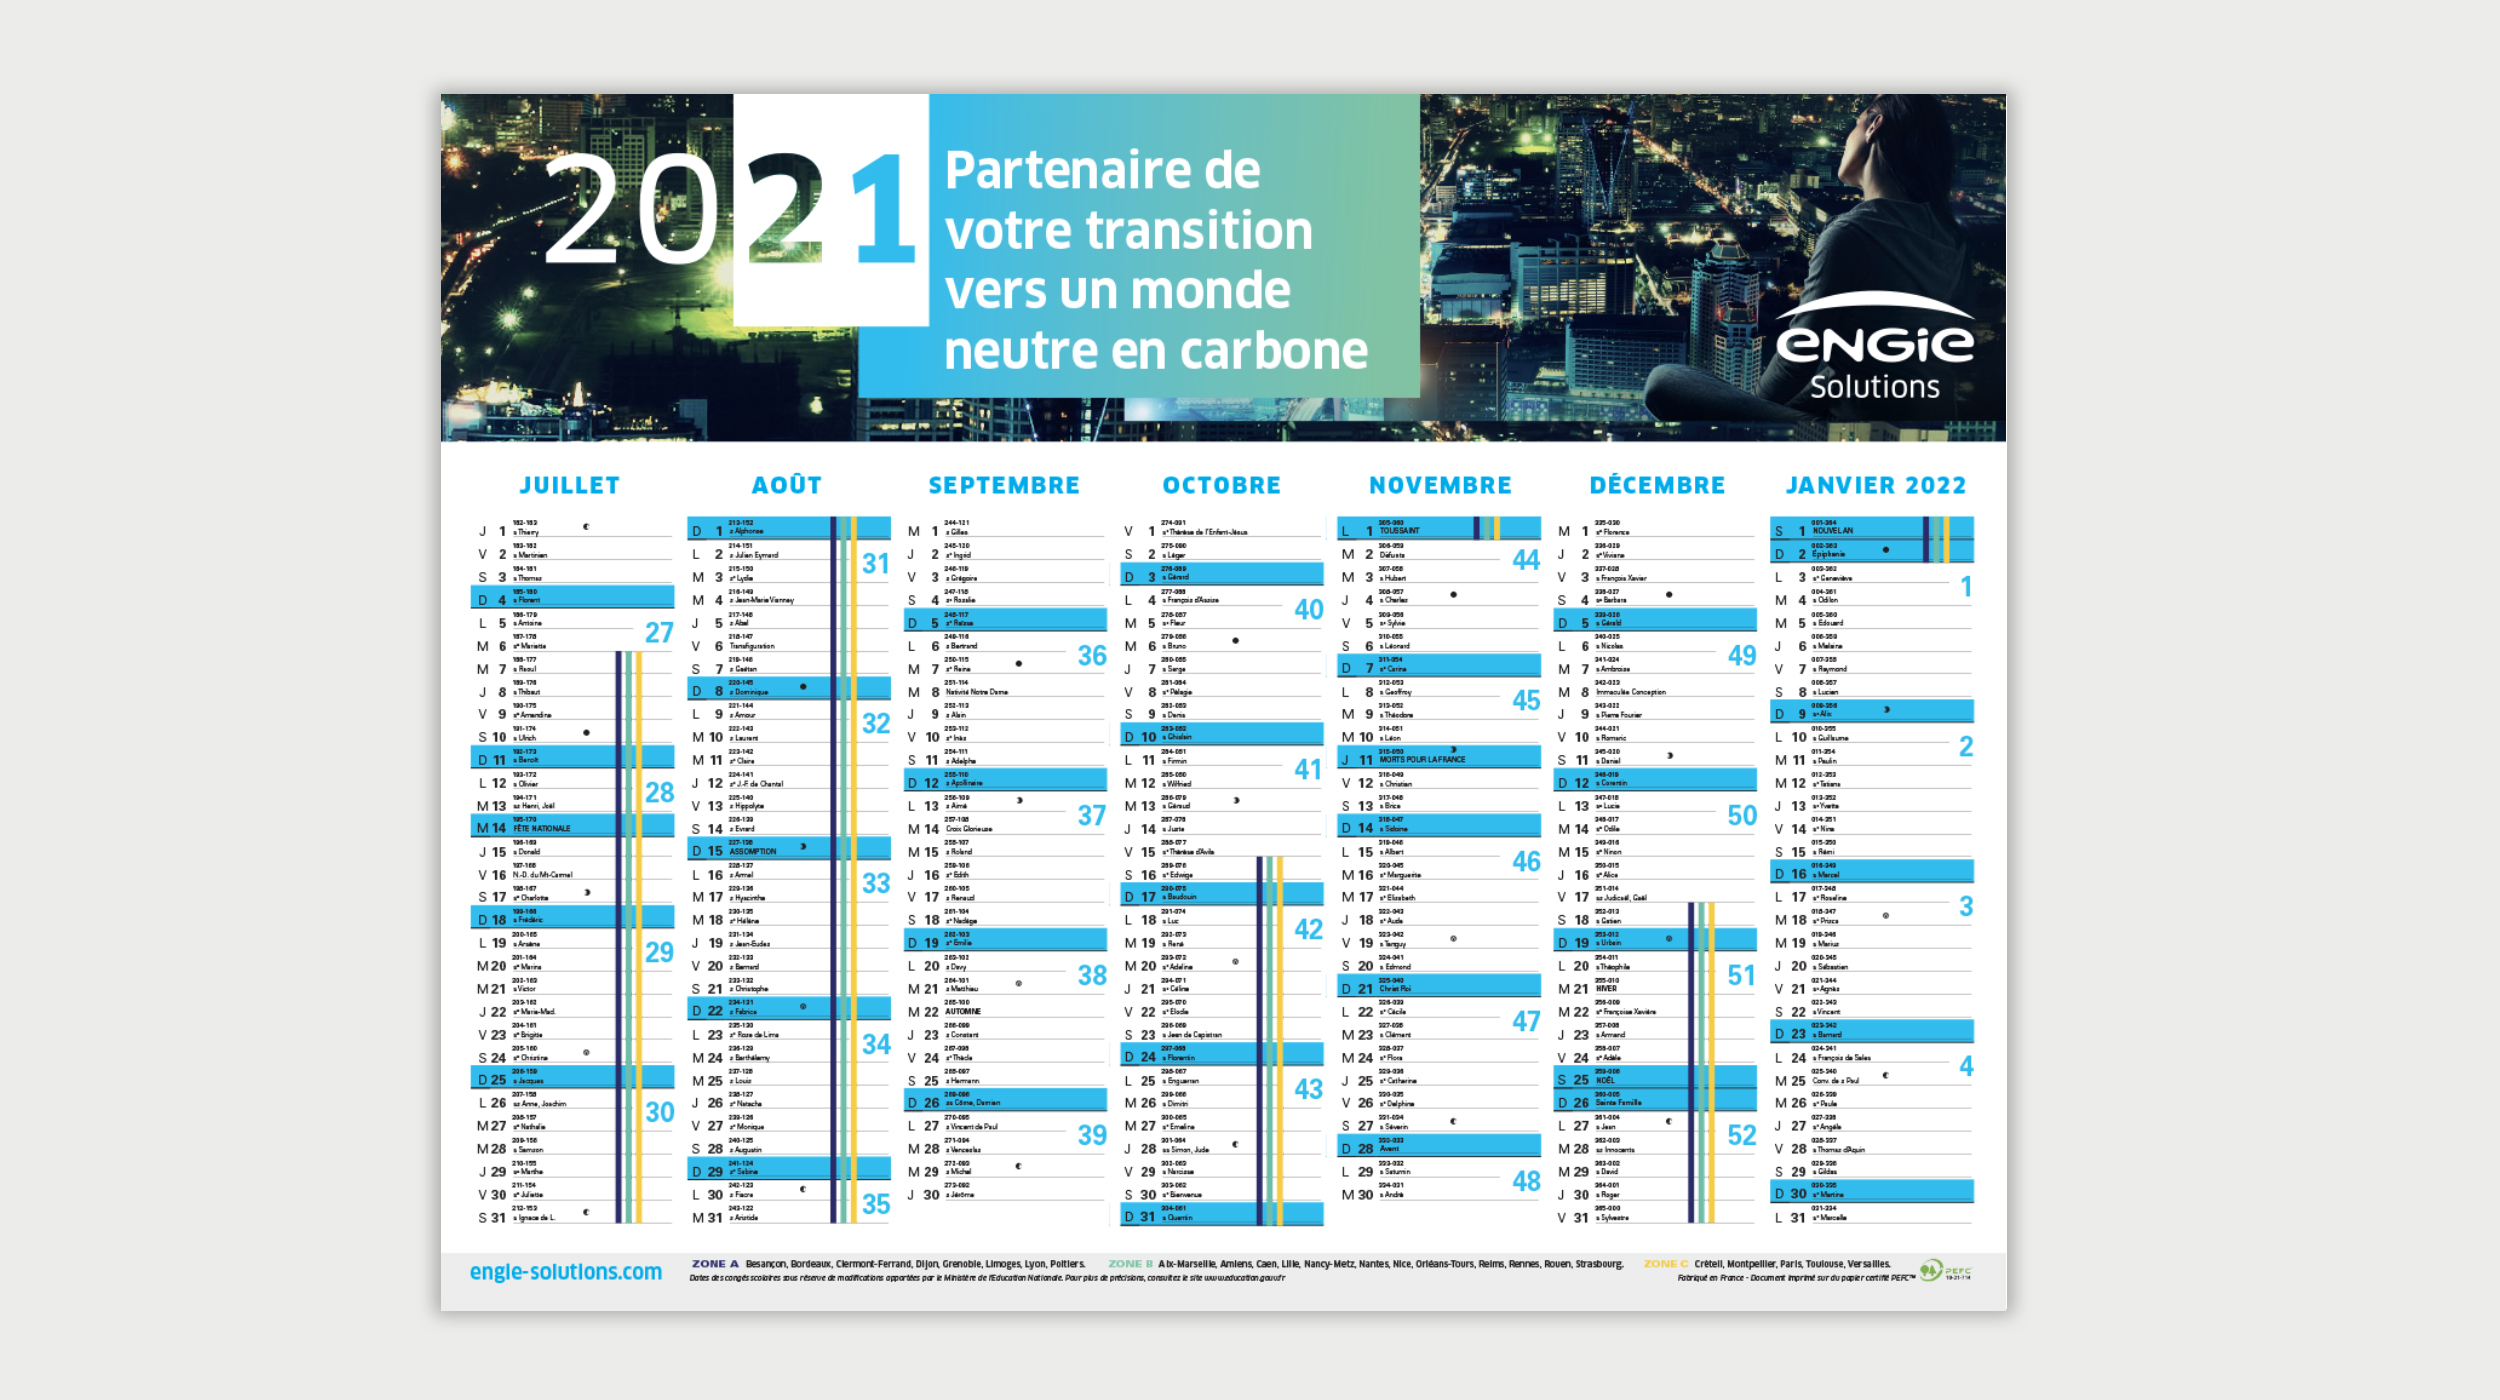 Engie Solutions - Calendriers